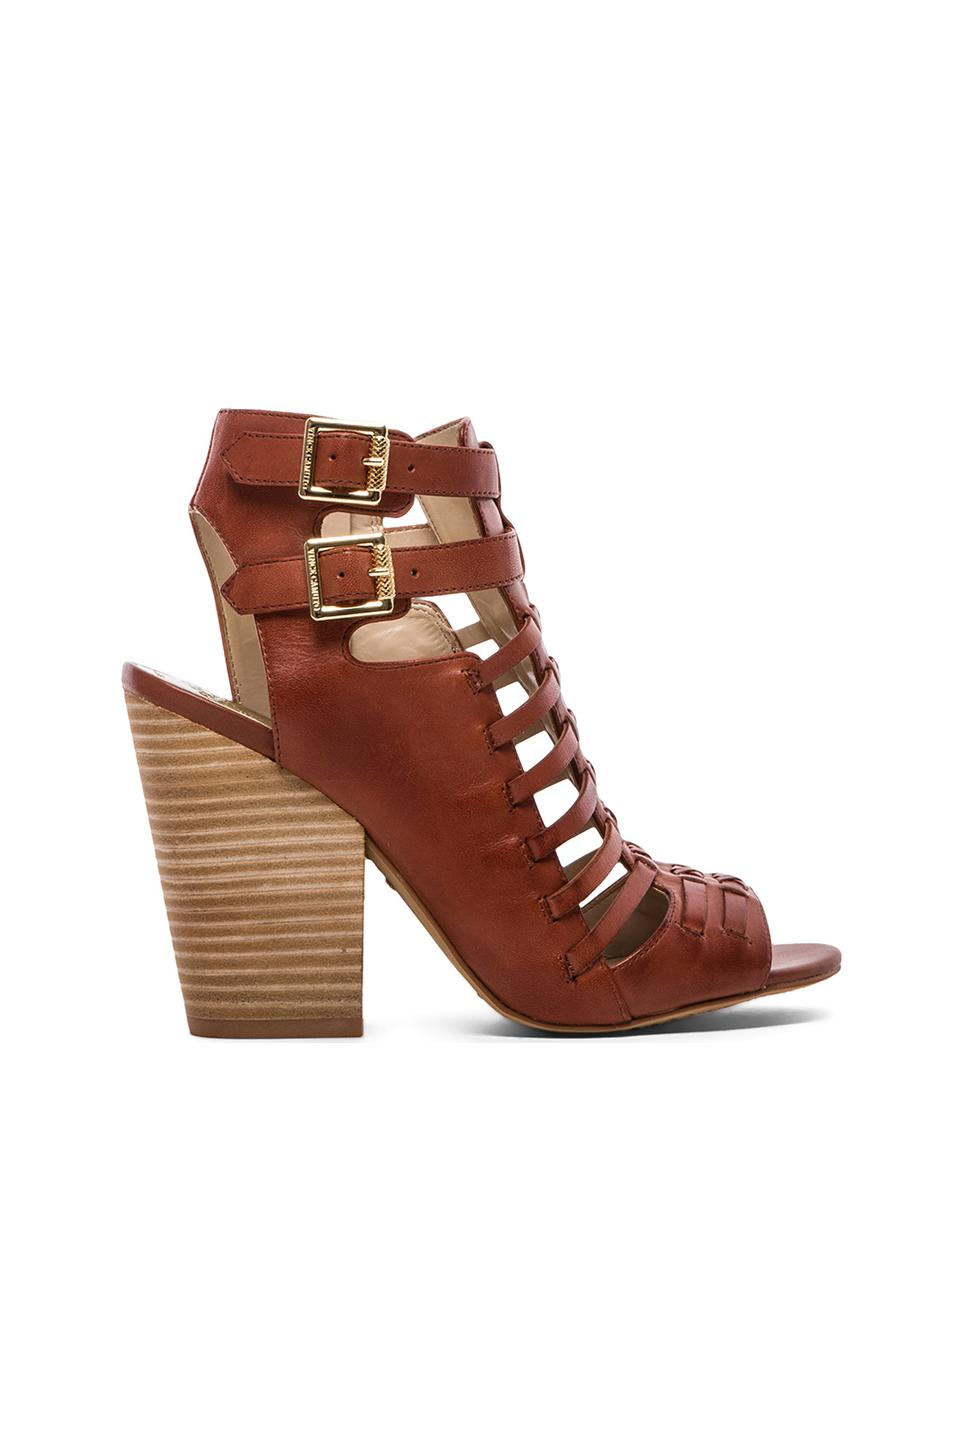 Vince Camuto Medow Sandal in Brick